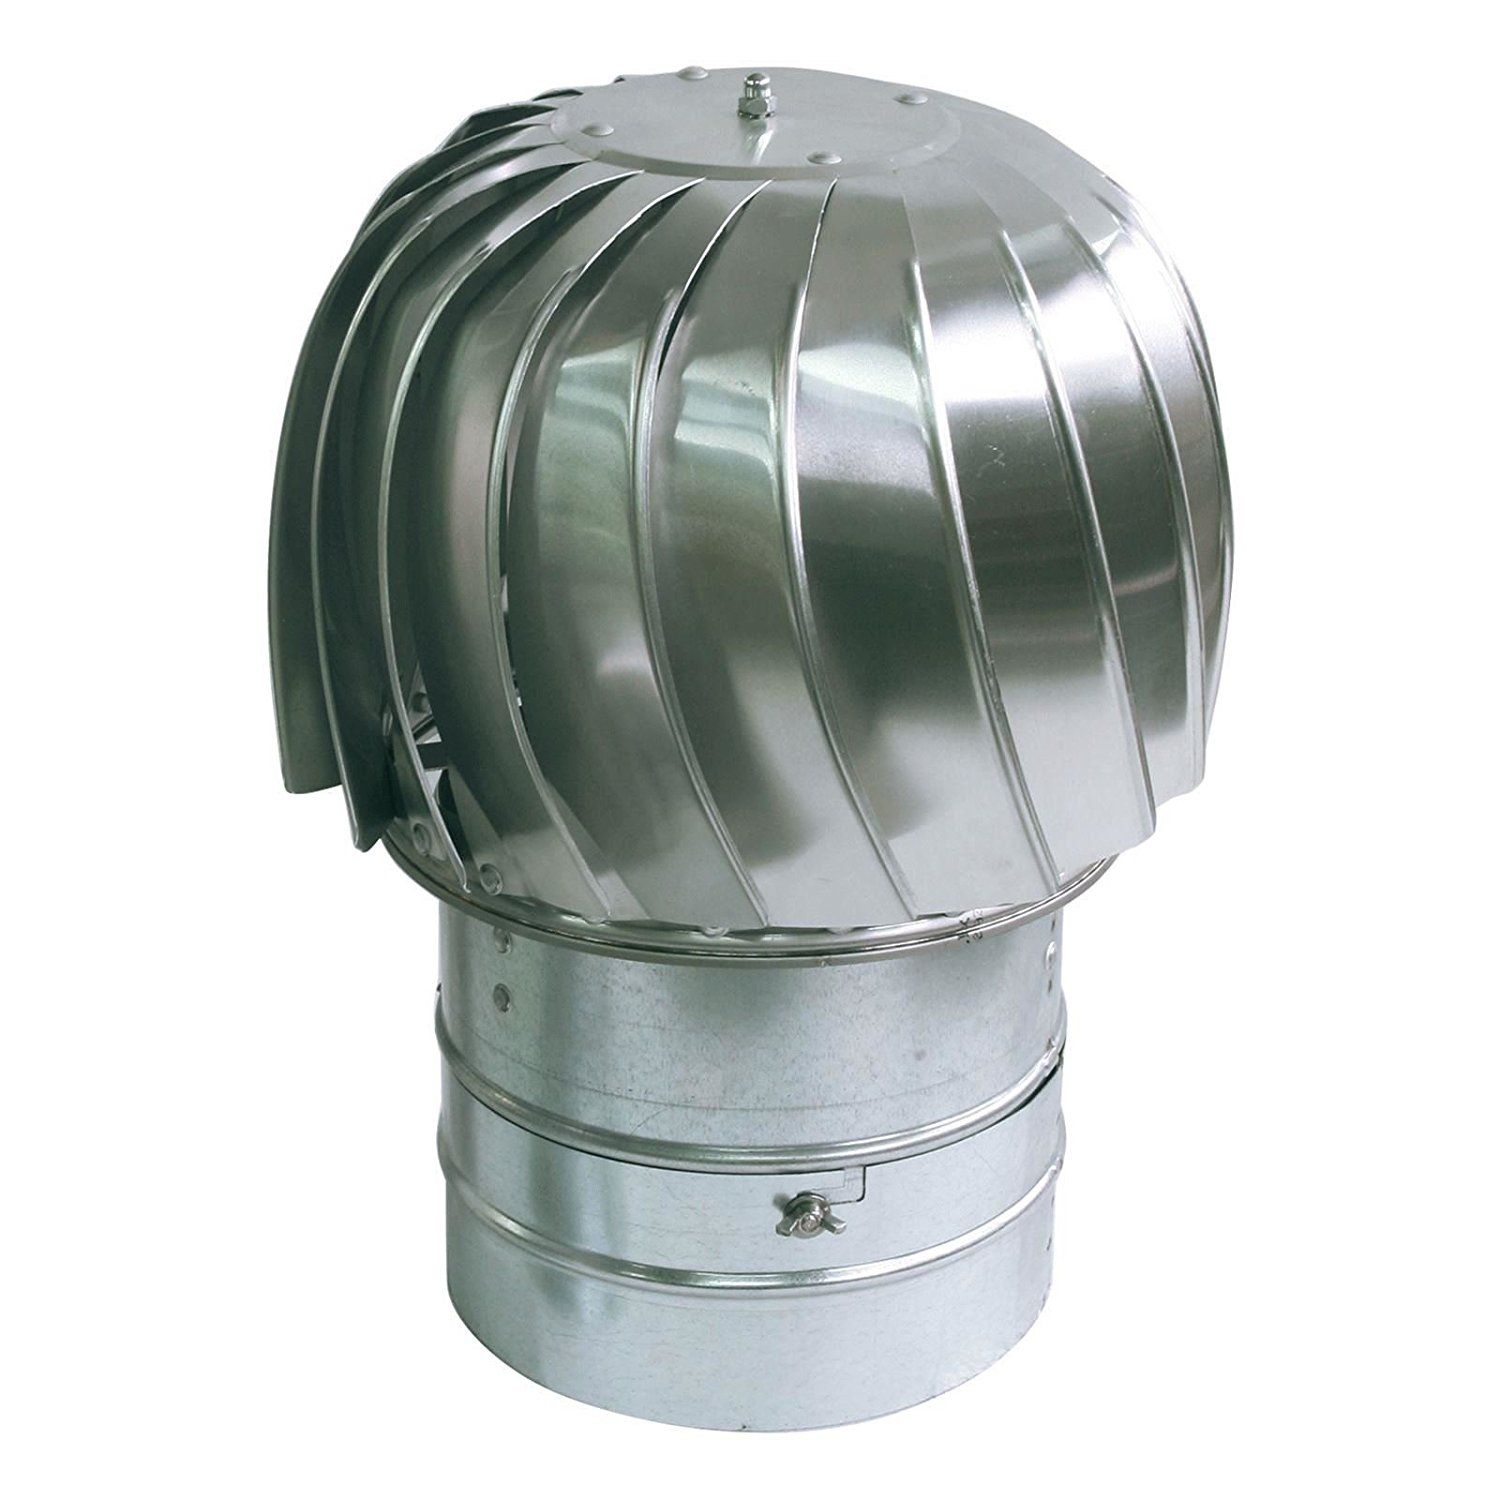 Standard Spinning Chimney Cowl Spinner Aluminum Downdraught Ventilation 450mm More Info Could Be Found At The Image Url Chimney Cowls Roof Cap Ventilation